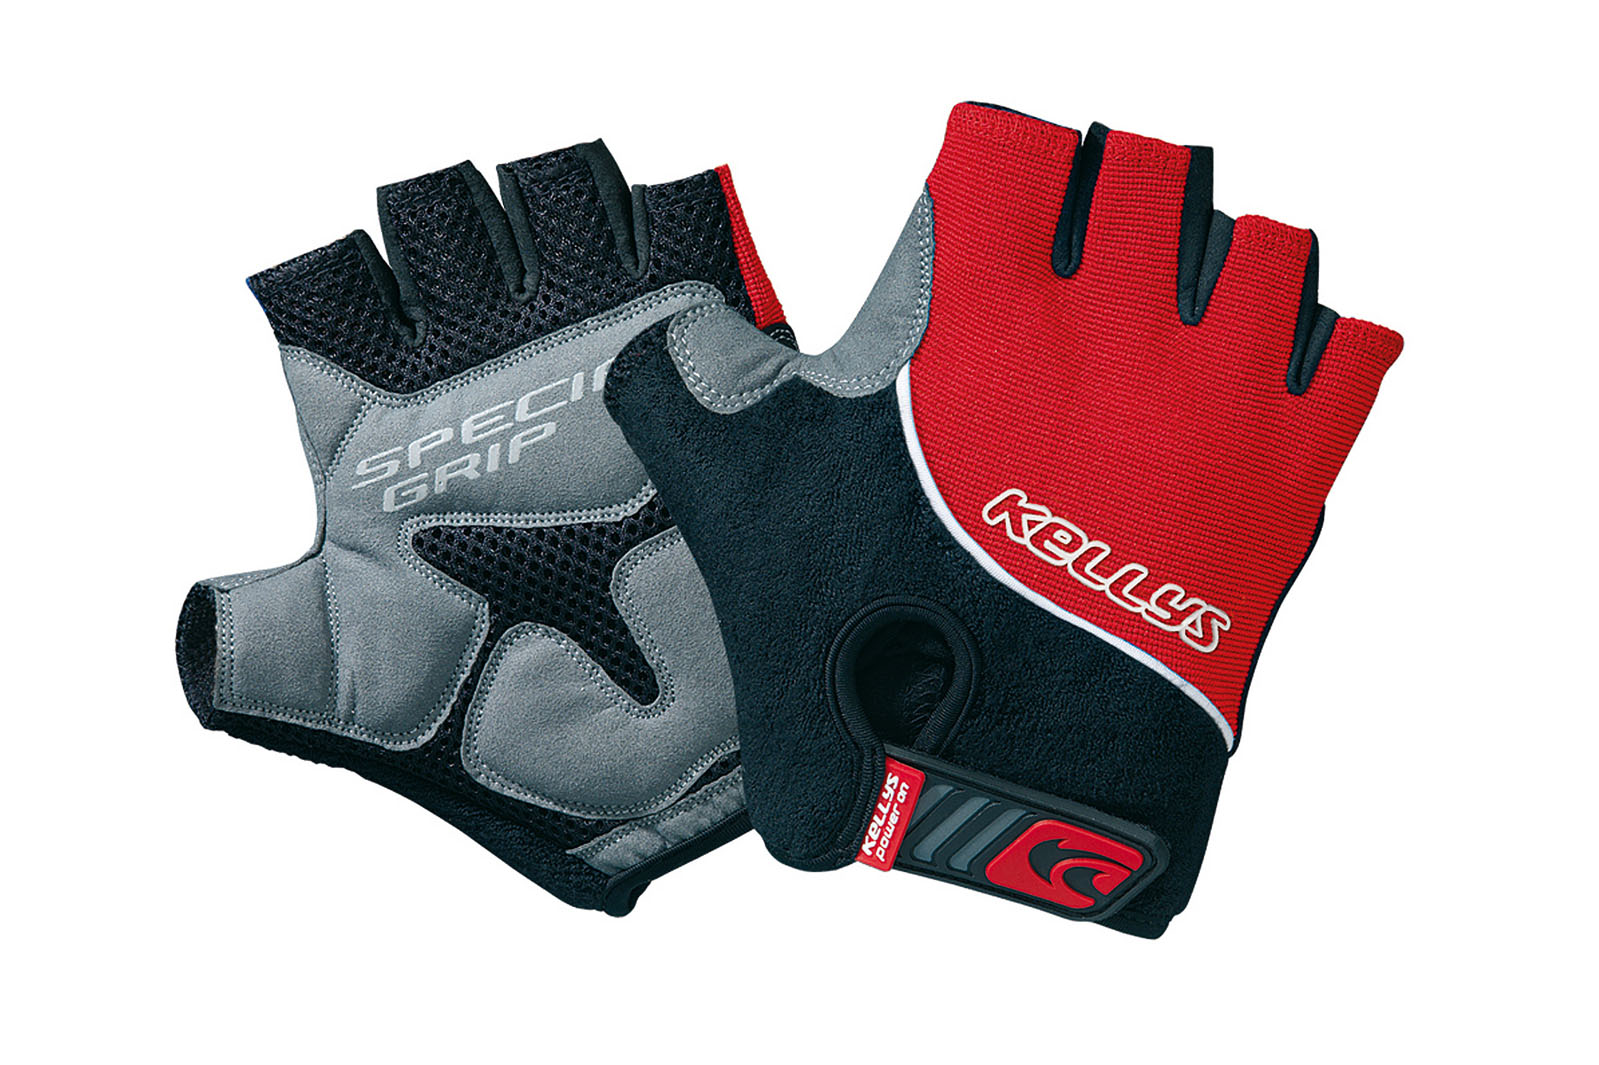 Handschuhe RACE red XS - Mile-Multisport